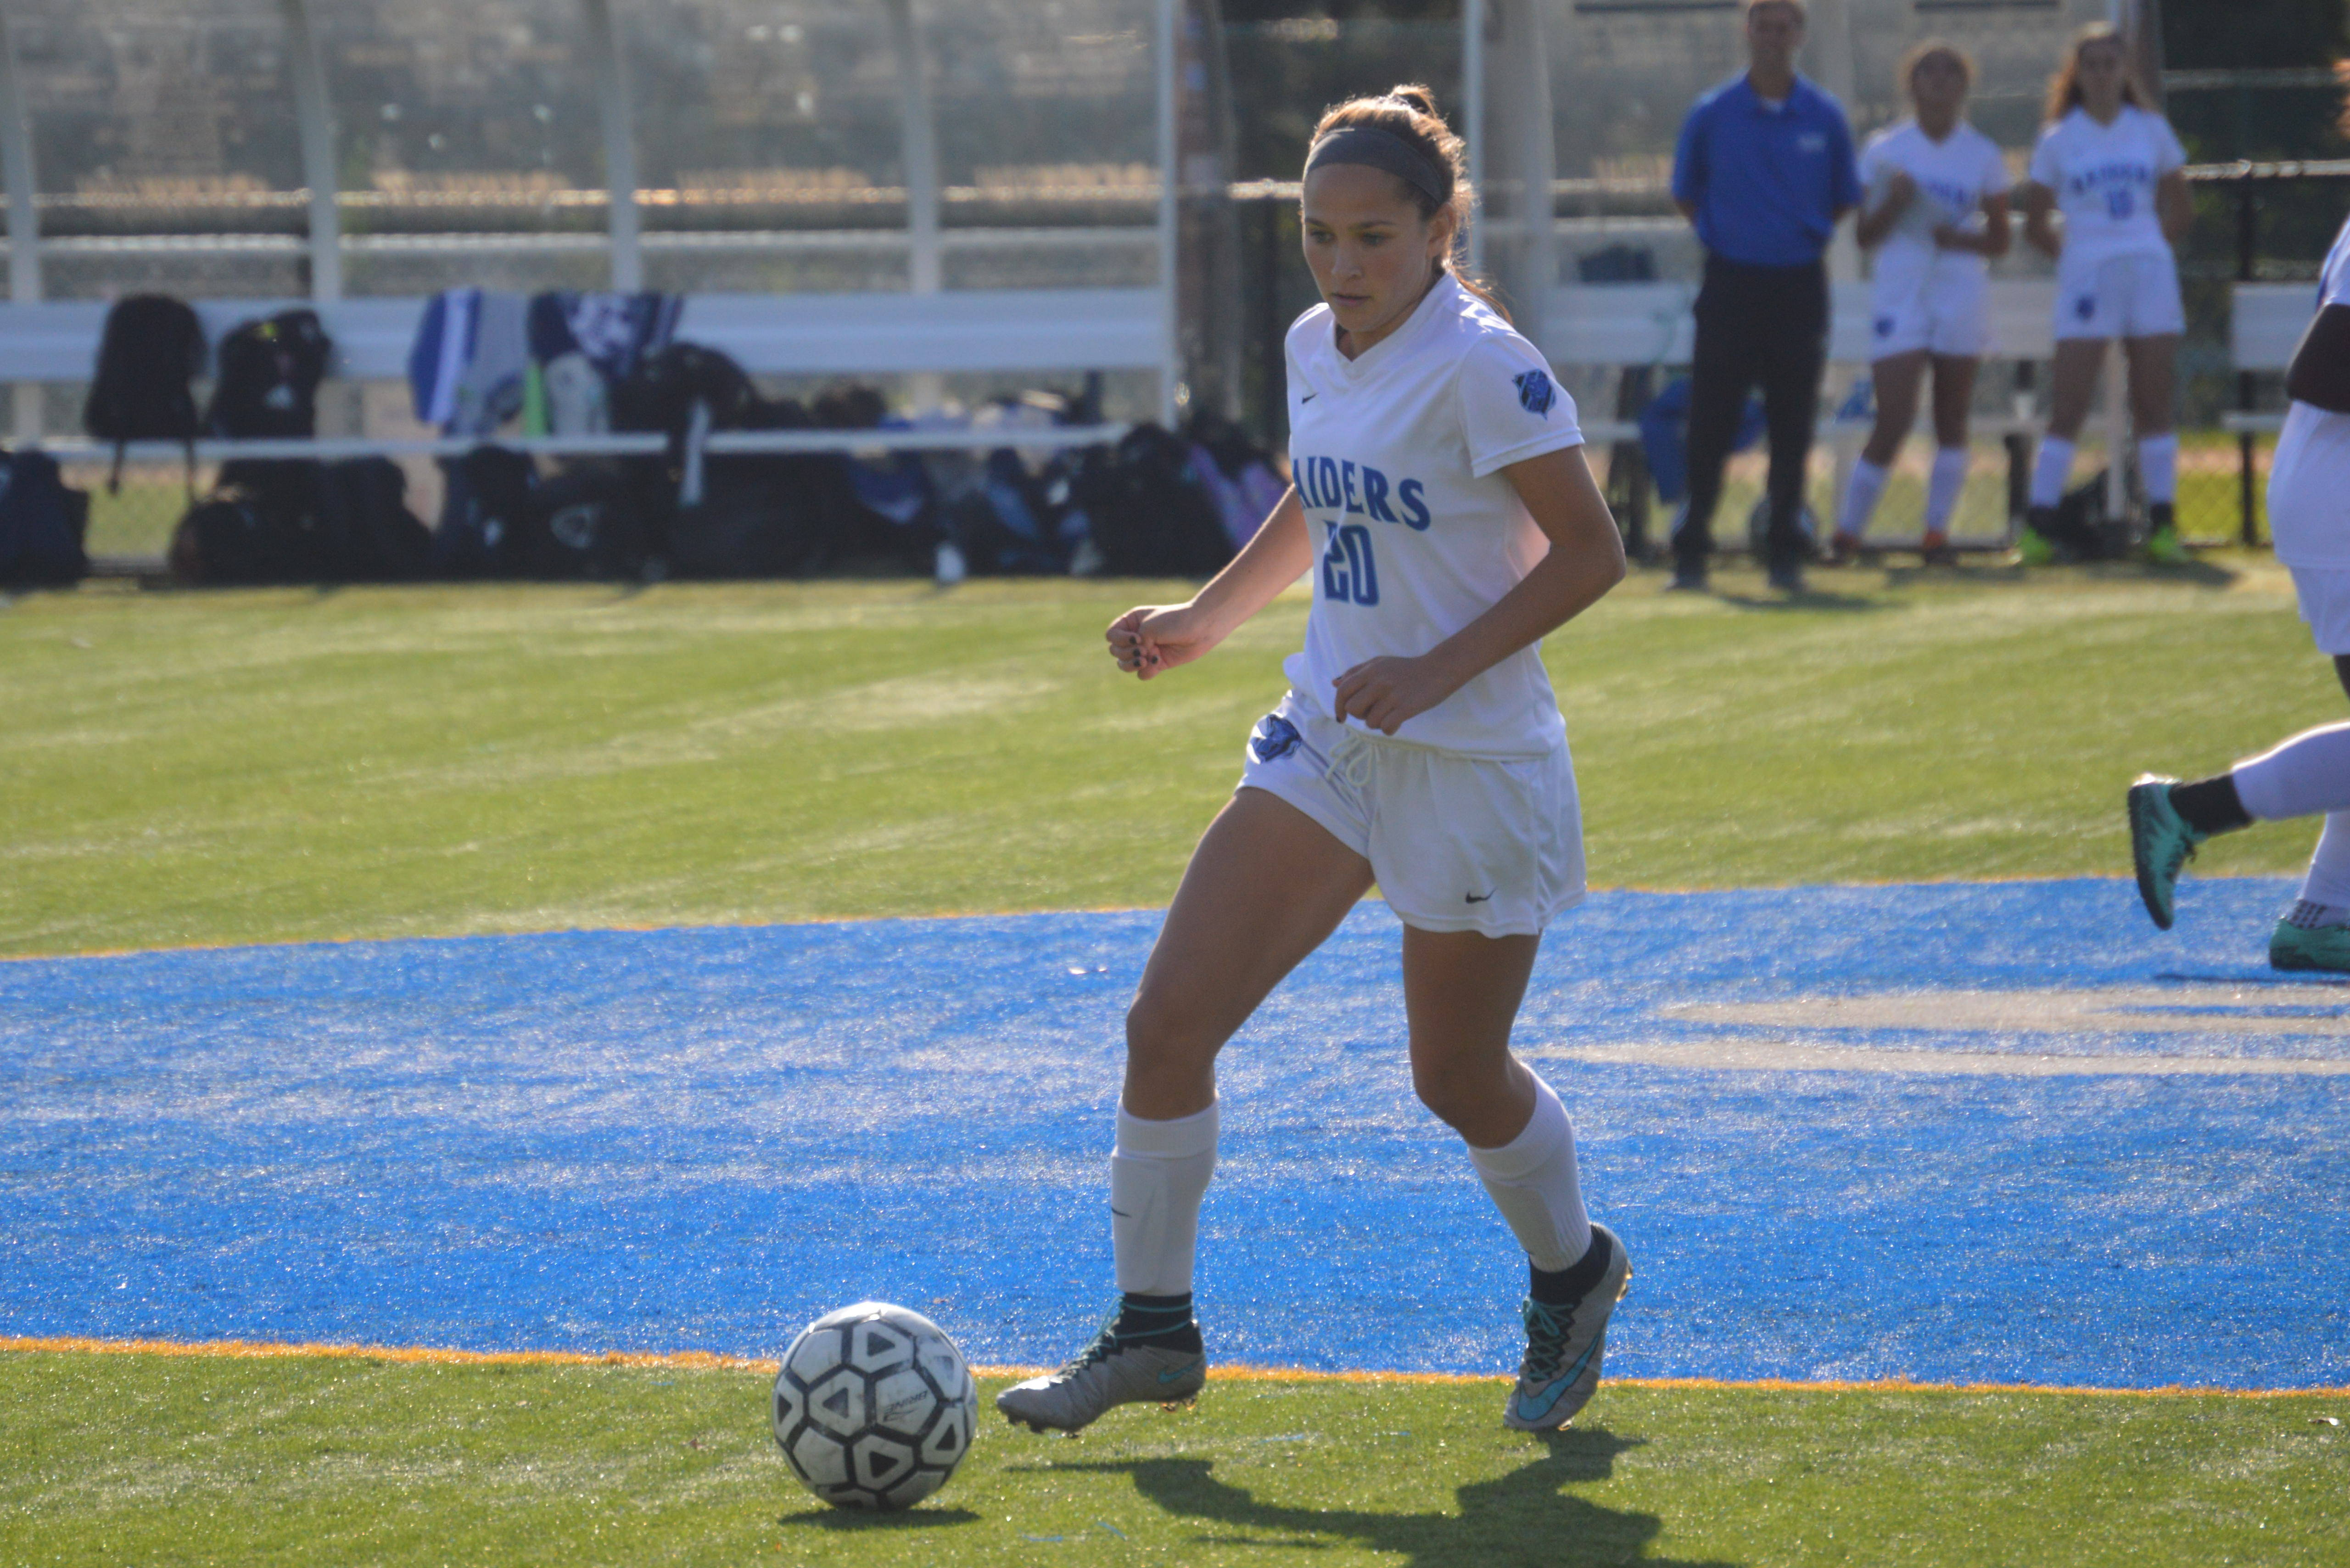 Garden state physical therapy - Erika Muskus 20 Is The Joint Motion Physical Therapy Athlete Of The Week